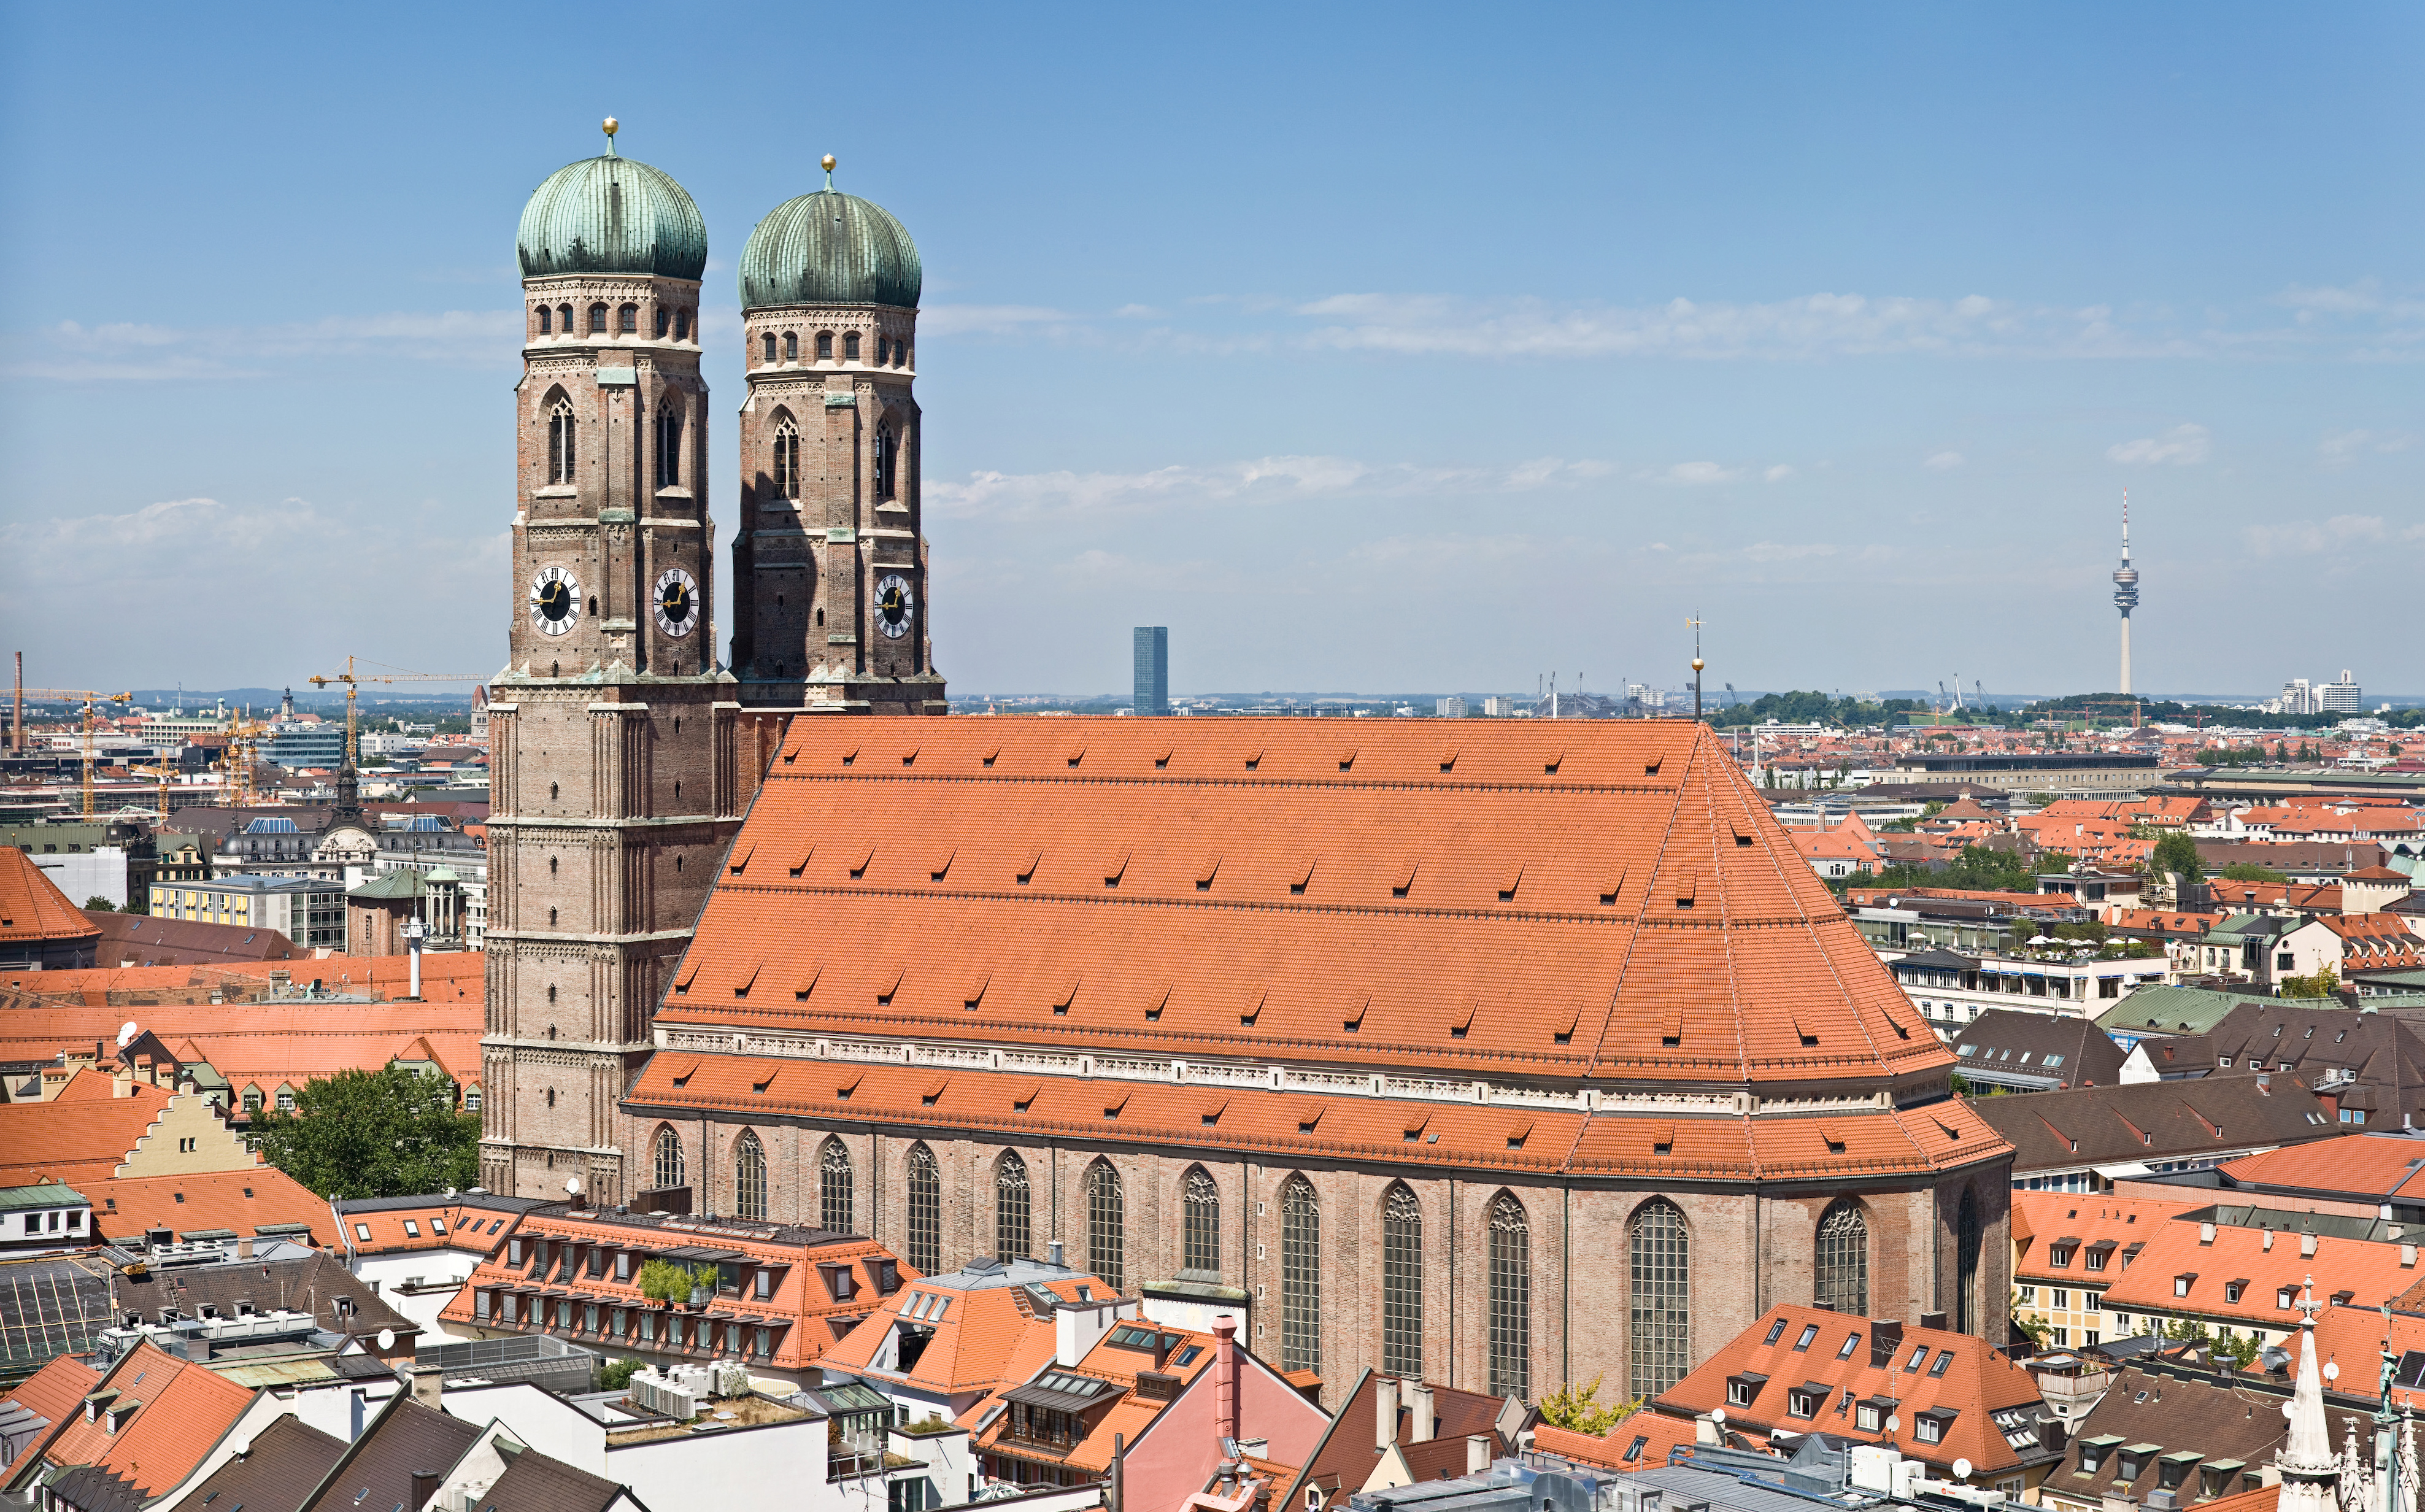 3- Our Lady's Cathedral (Frauenkirche)